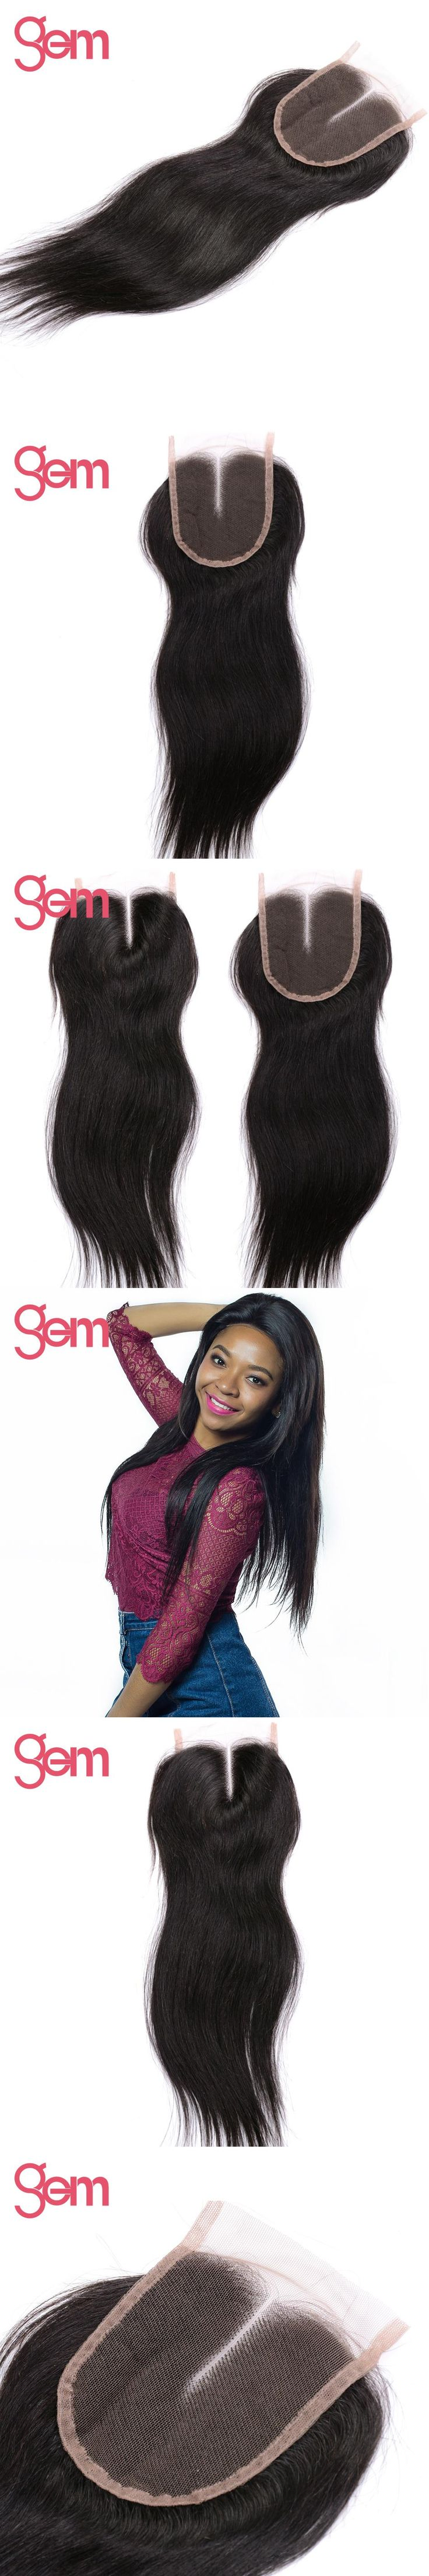 Brazilian Straight Hair 4x4 Middle Part Closure 100% Remy Human Hair Extensions GEM Swiss Lace Closure Natural Black 10-20 inch